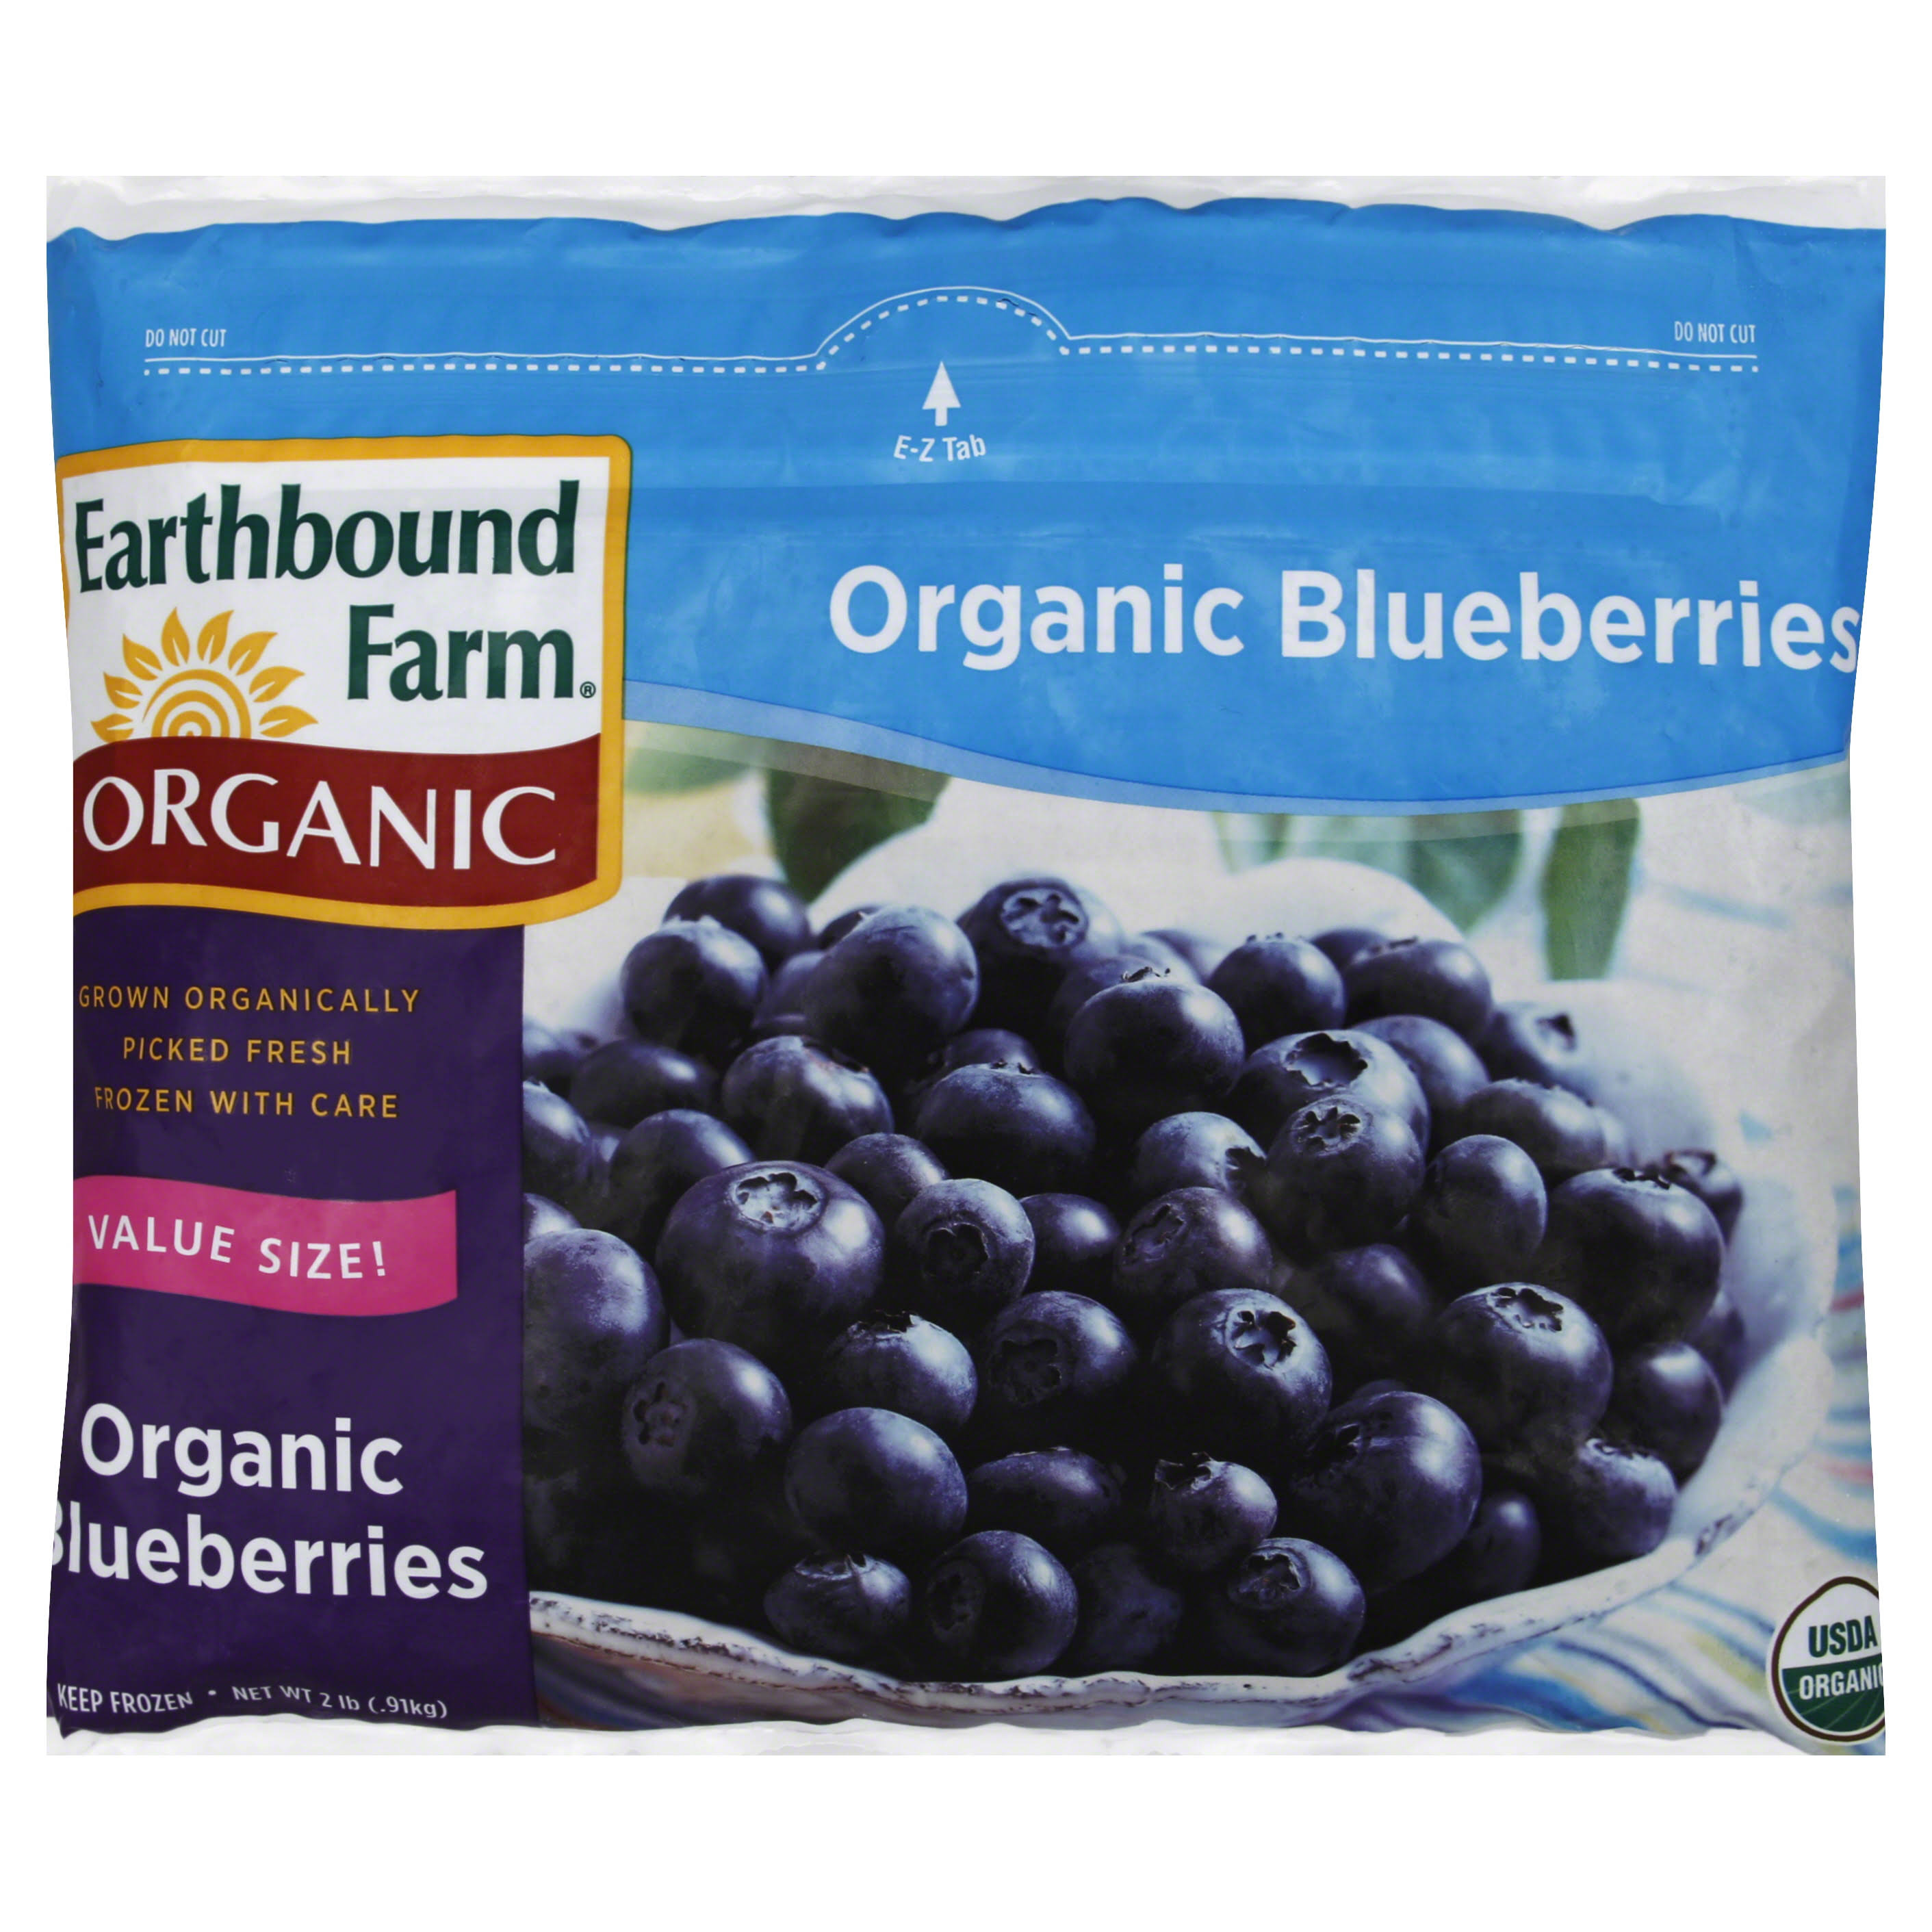 Earthbound Farm Organic Blueberries, Organic, Value Size - 2 lb